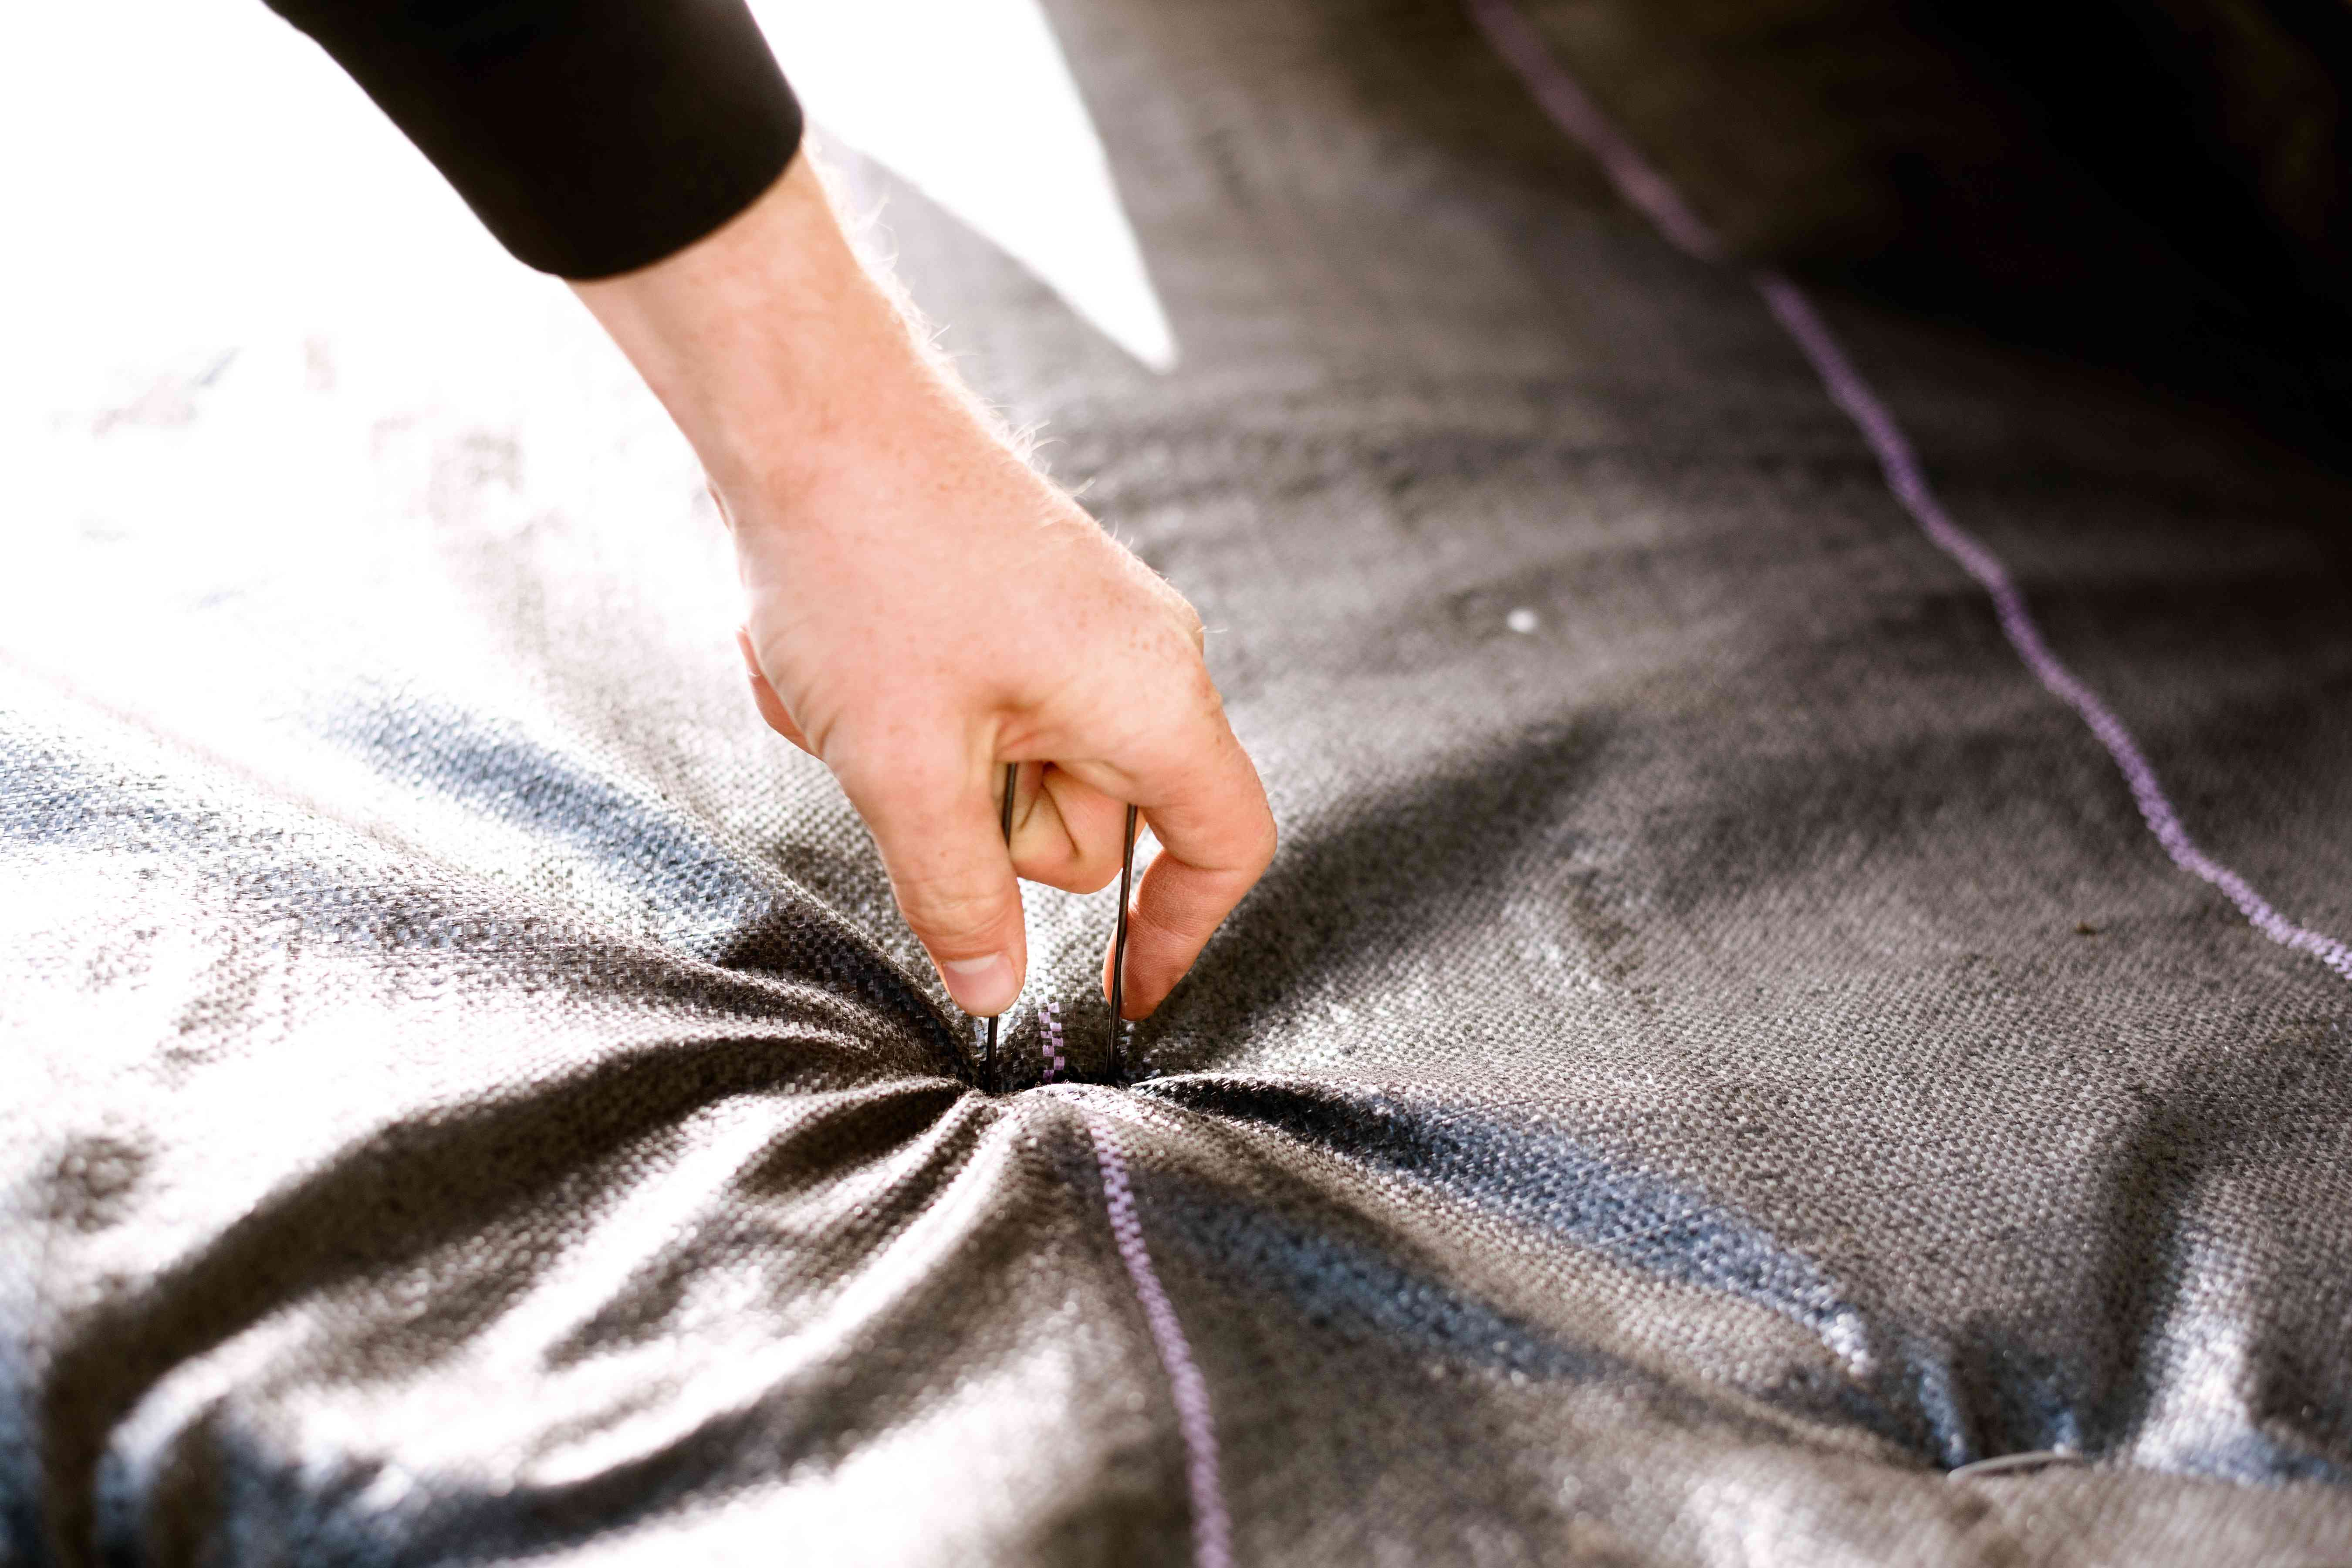 placing staples in the landscaping fabric